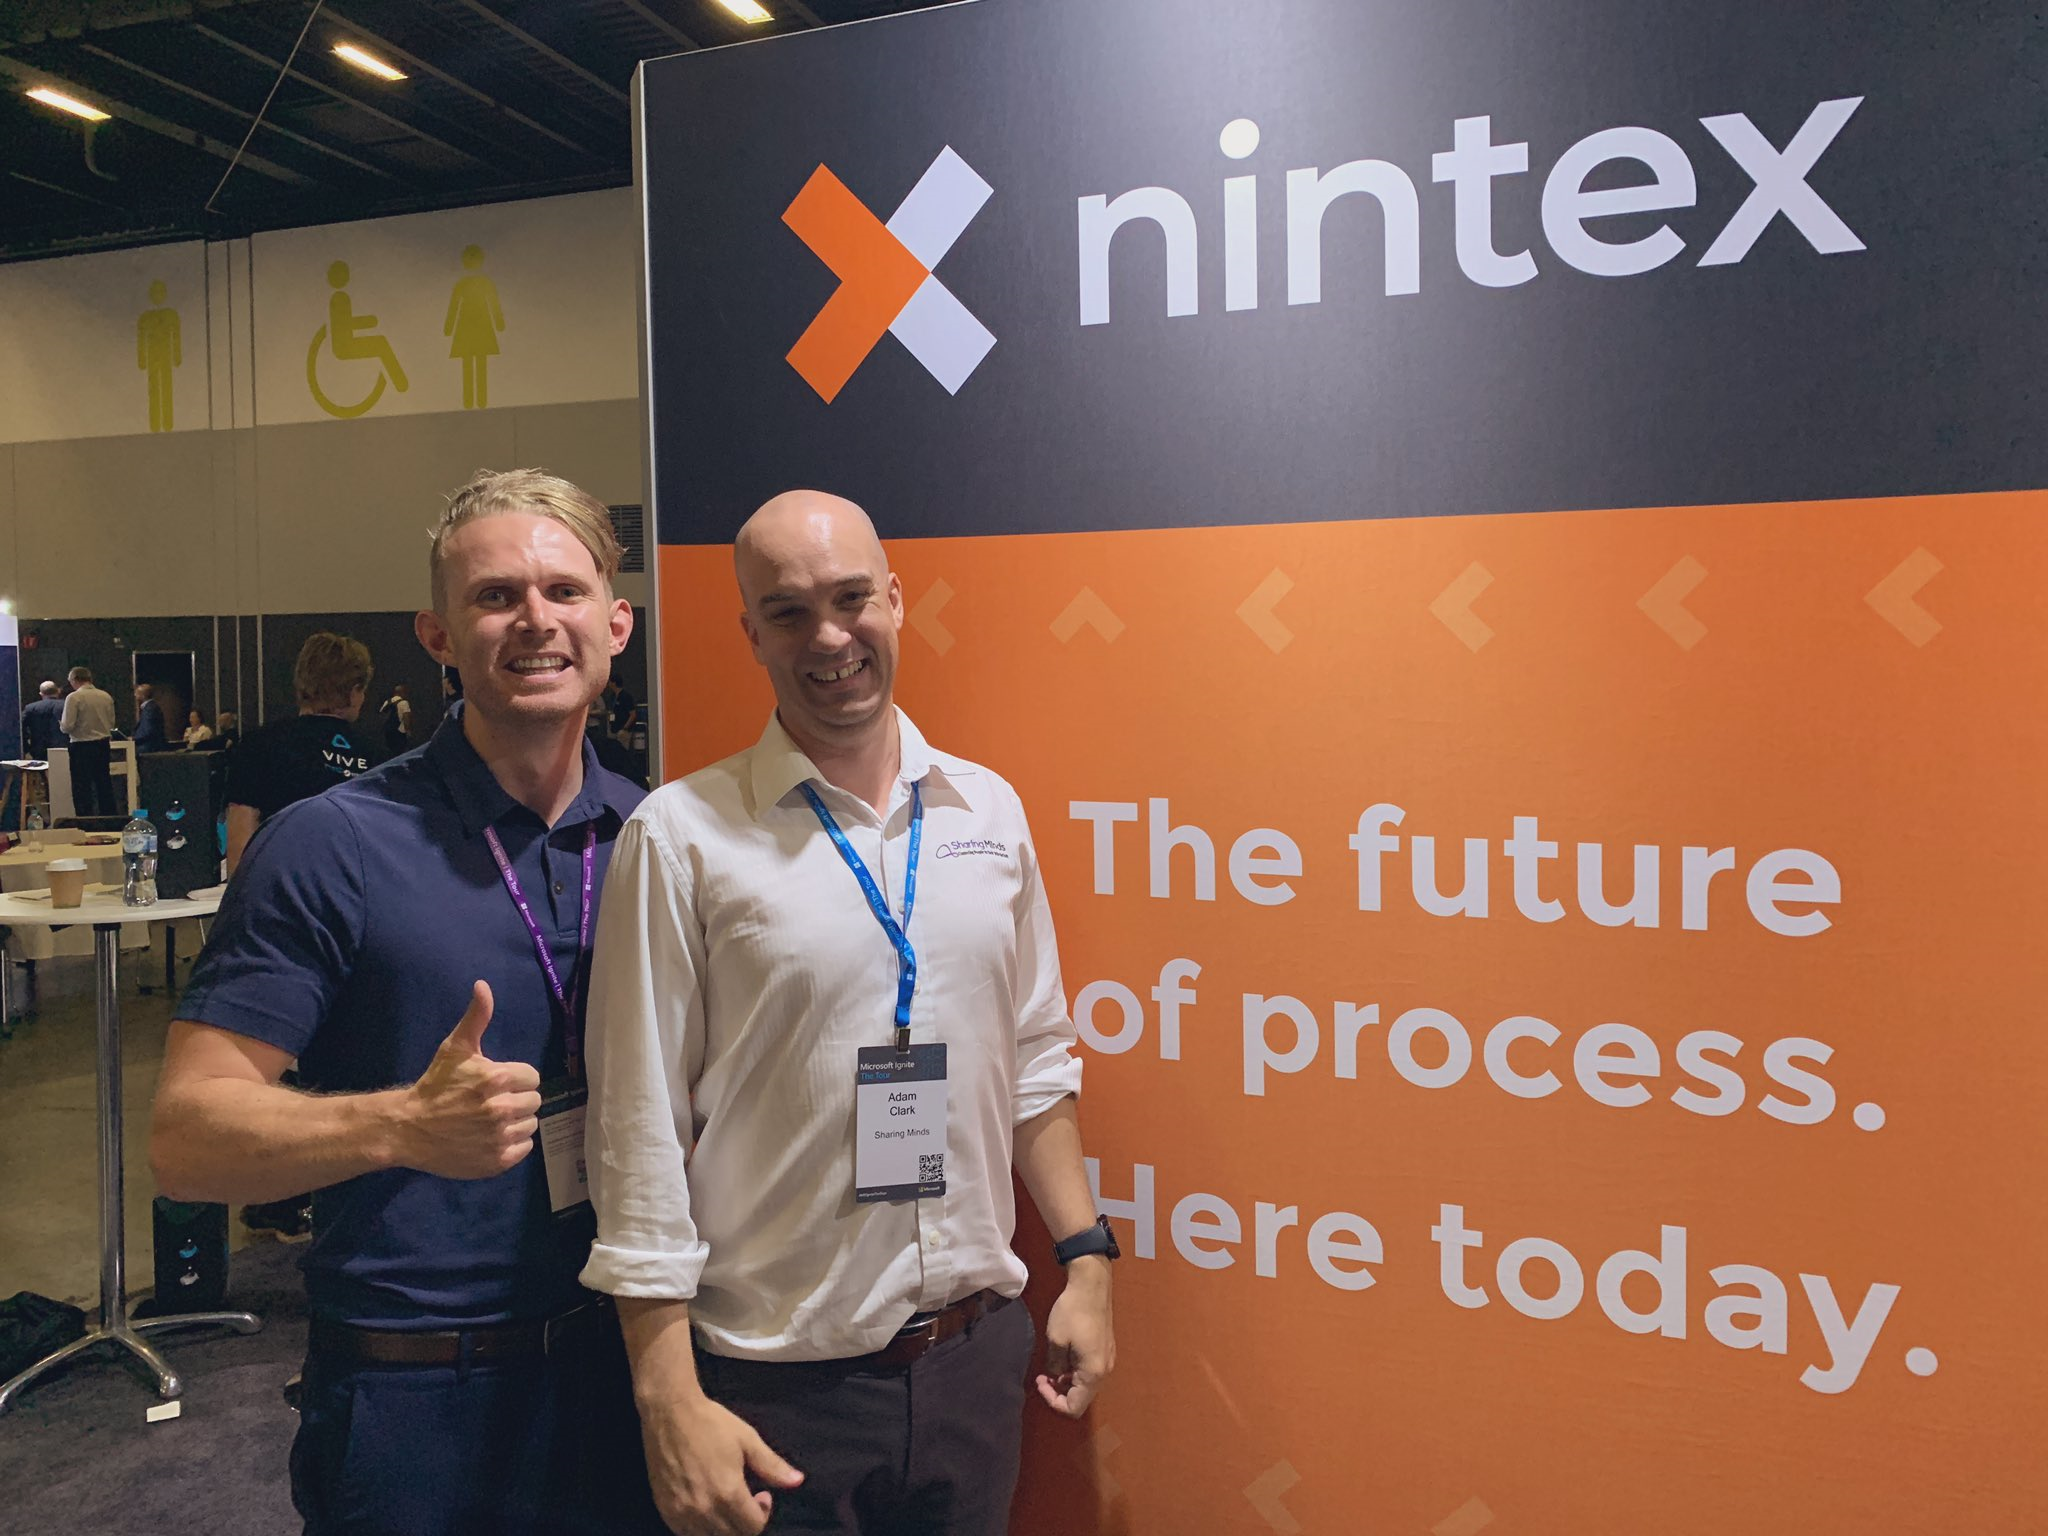 Adam Clark with Nintex Sales Engineer Mathew Johnson at the Nintex booth. Photo credit: Nintex.